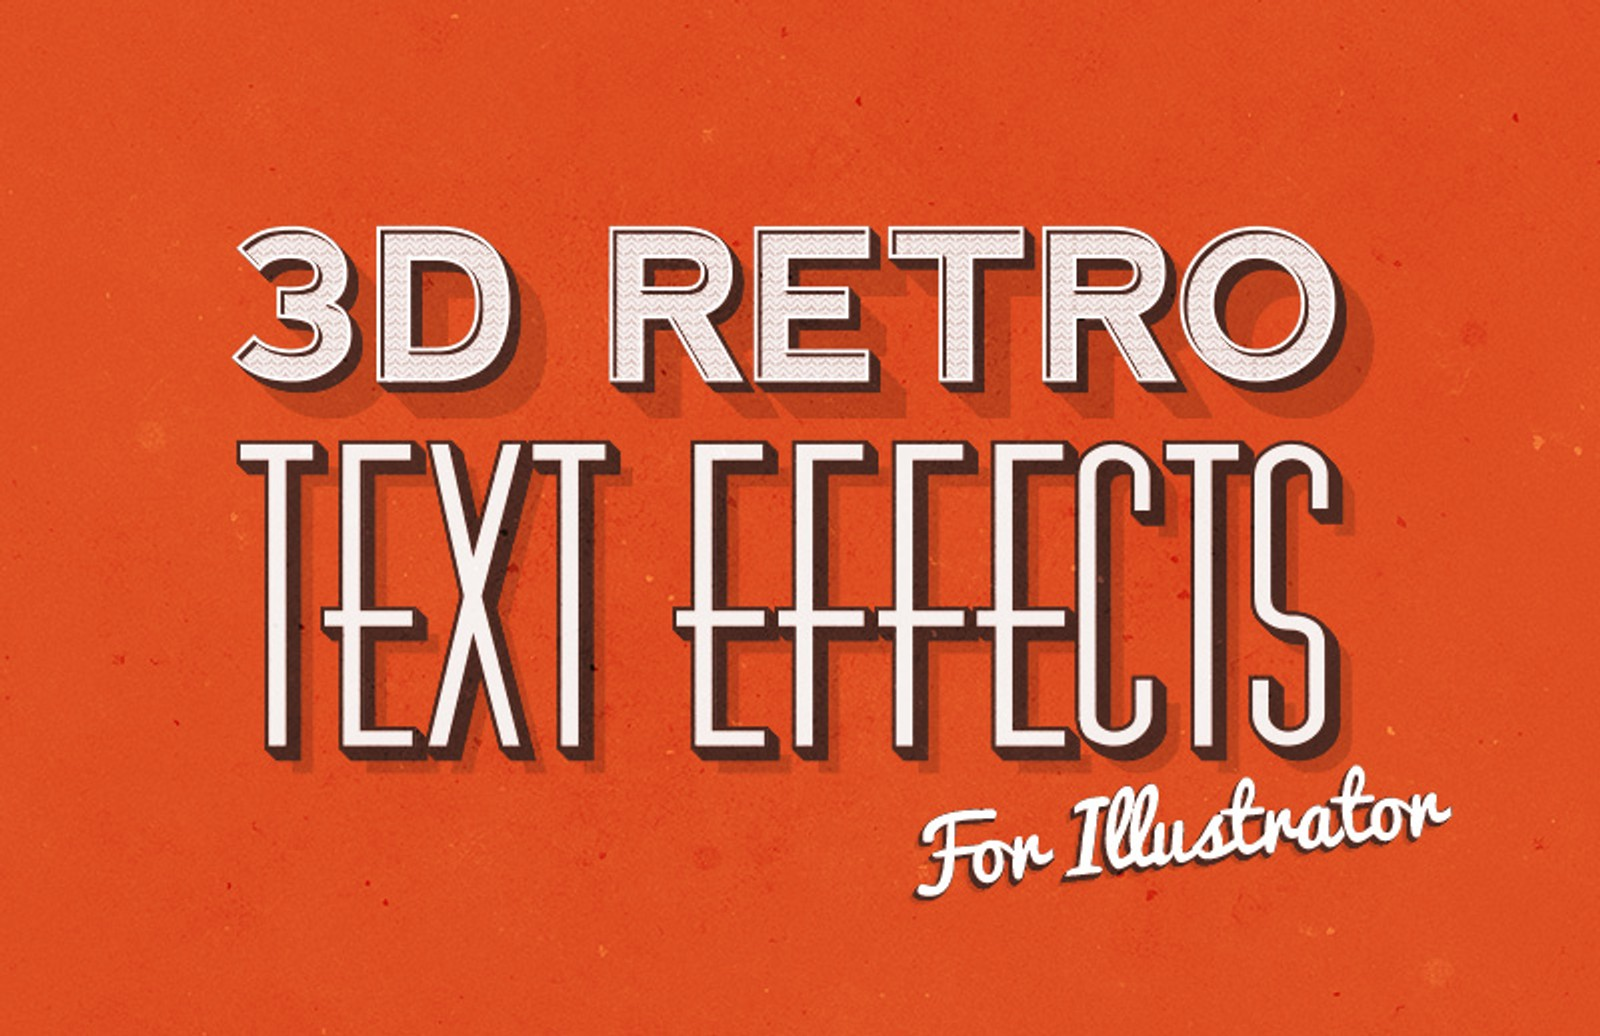 3 D  Retro  Text  Effects  Illustrator  Preview 1